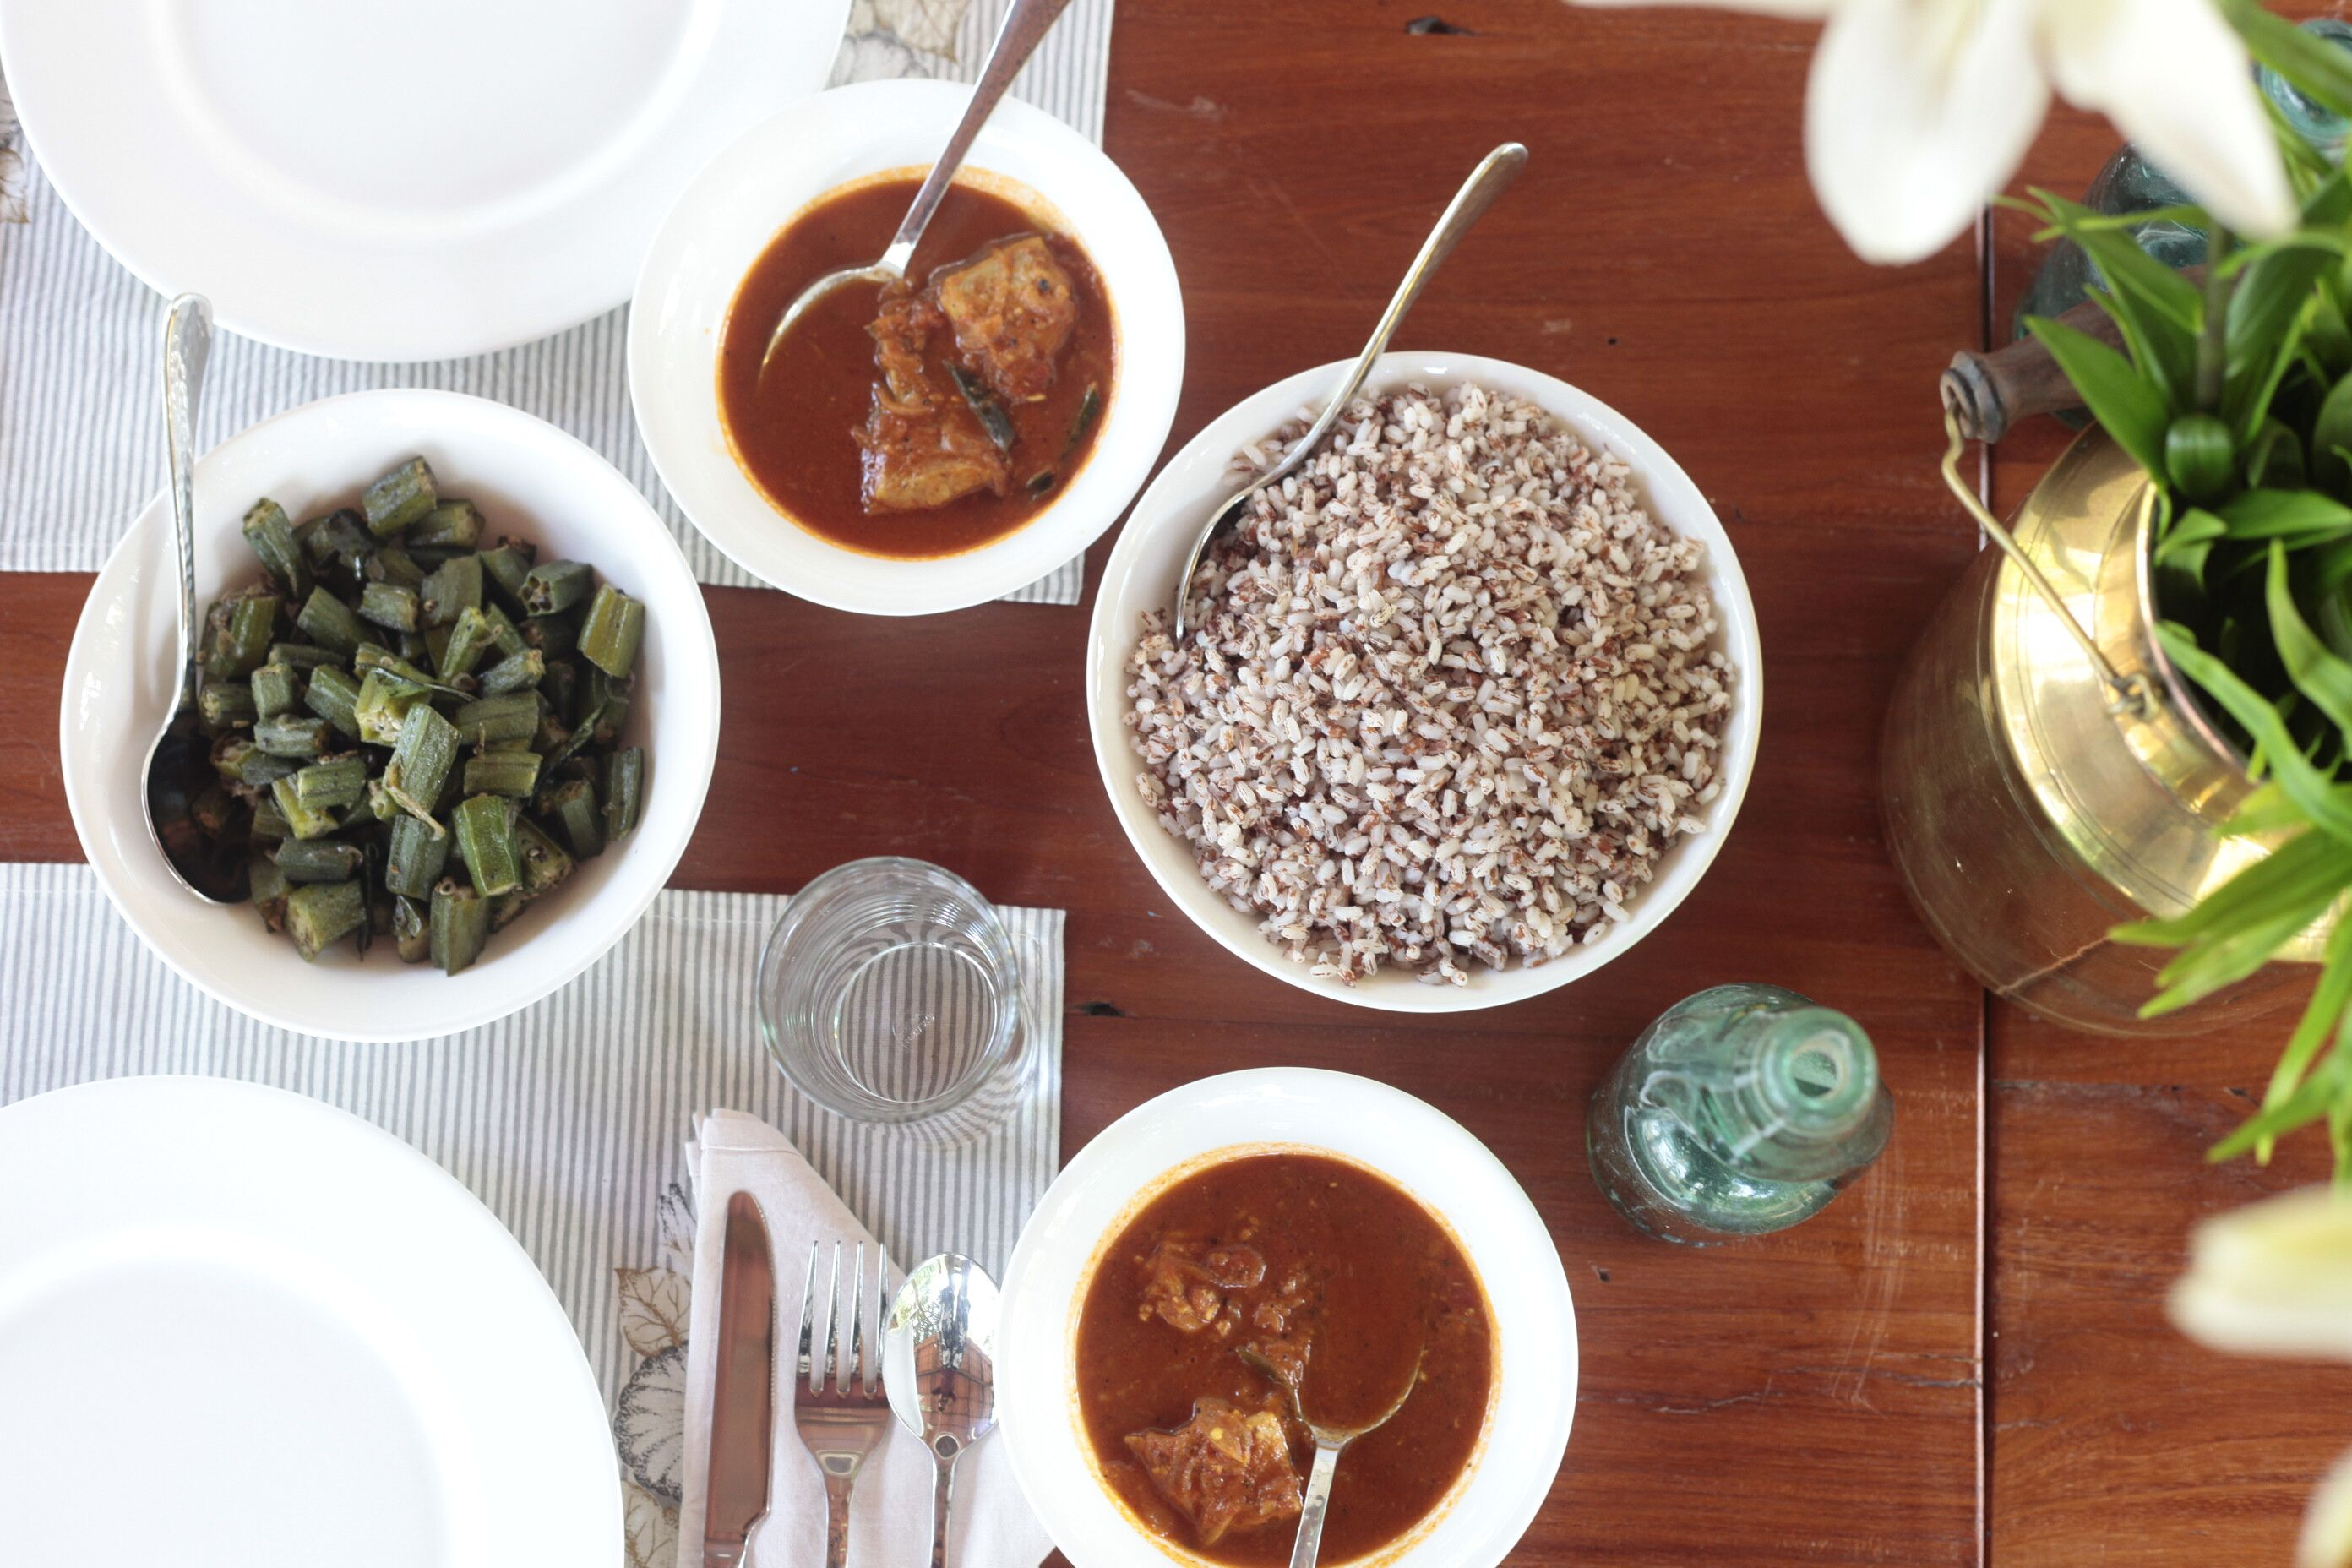 Food serves in Kayal Island Resort Kakkathuruthu is organic and locally sourced